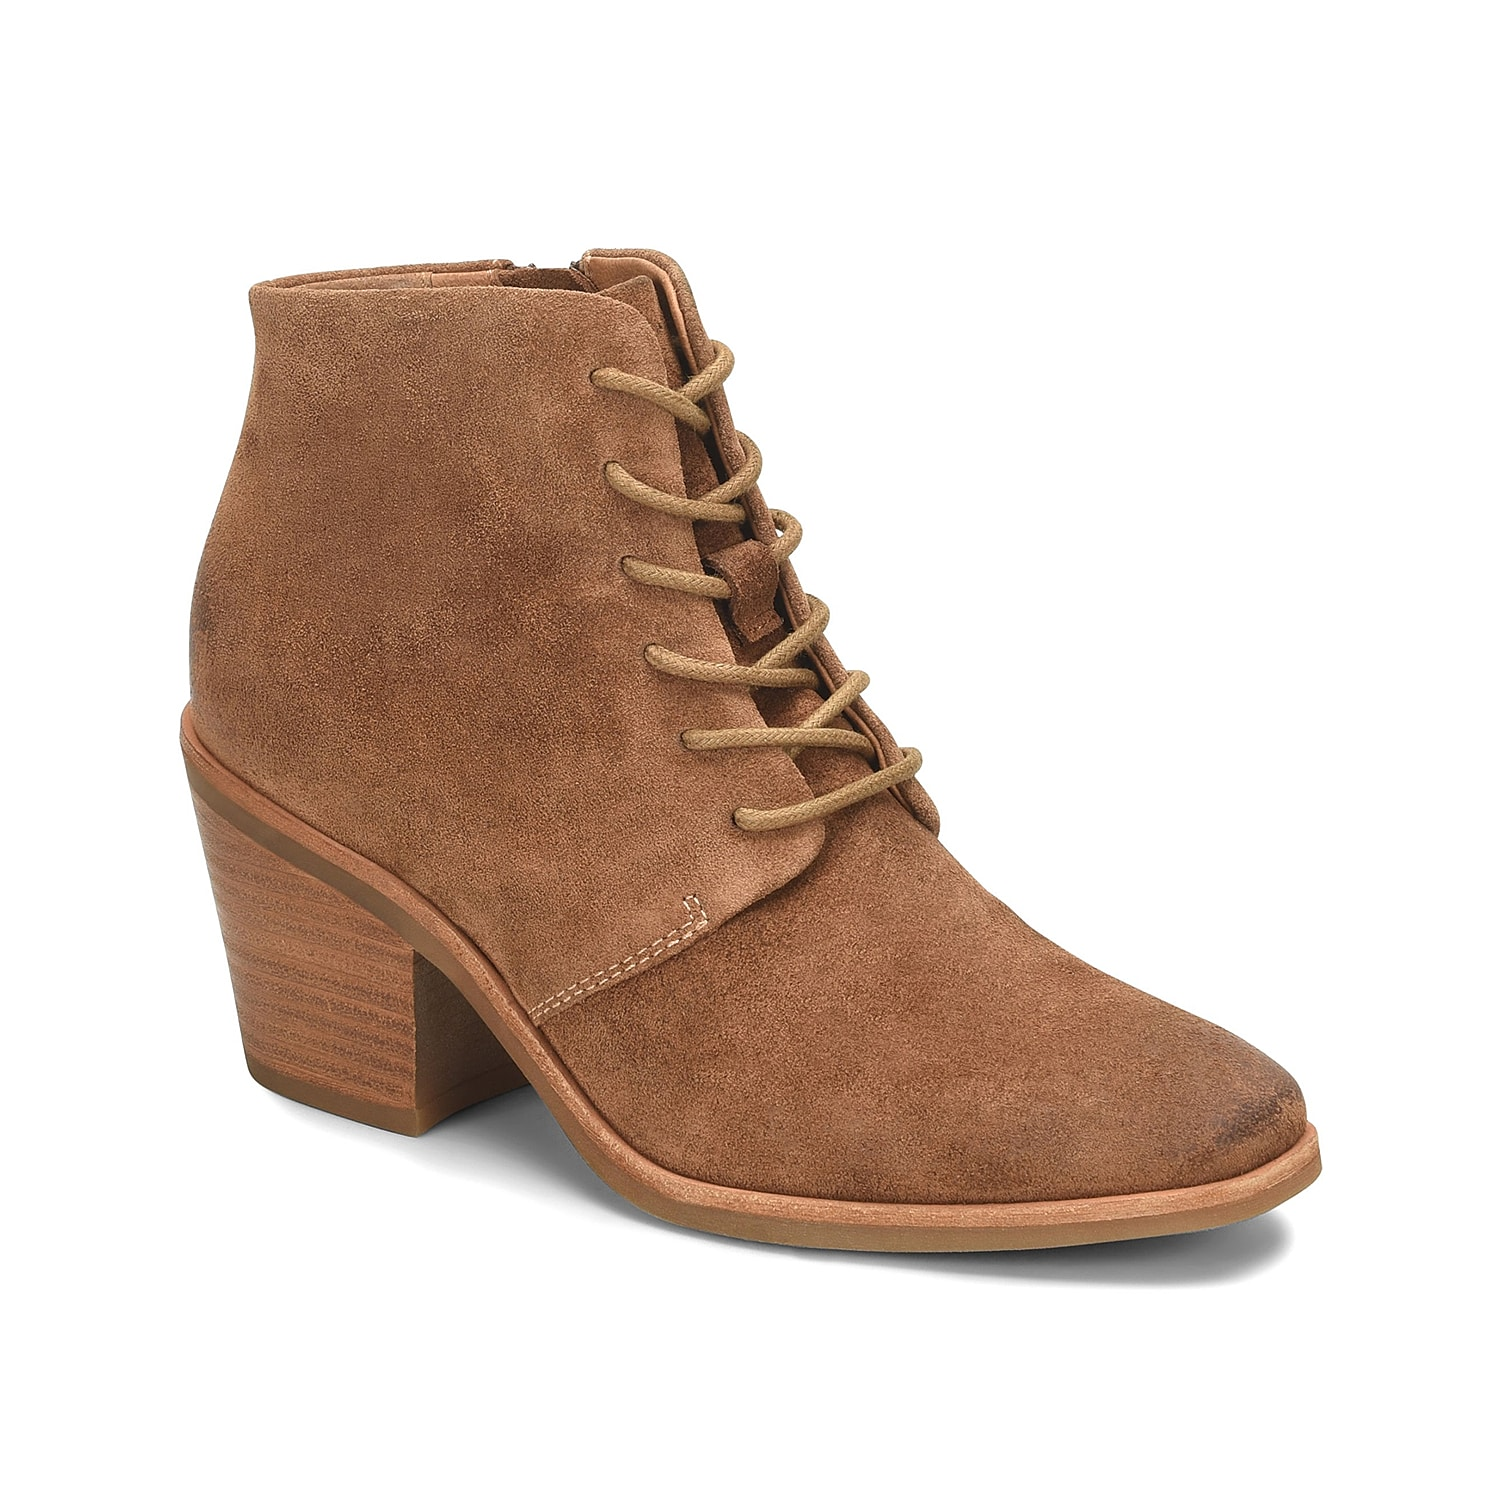 The Corlea bootie from Sofft is a classic design with an elegant lift. Made of luxurious leather, this lace-up bootie is cushioned at ball, heel and arch for superior support.Click here for Boot Measuring Guide.